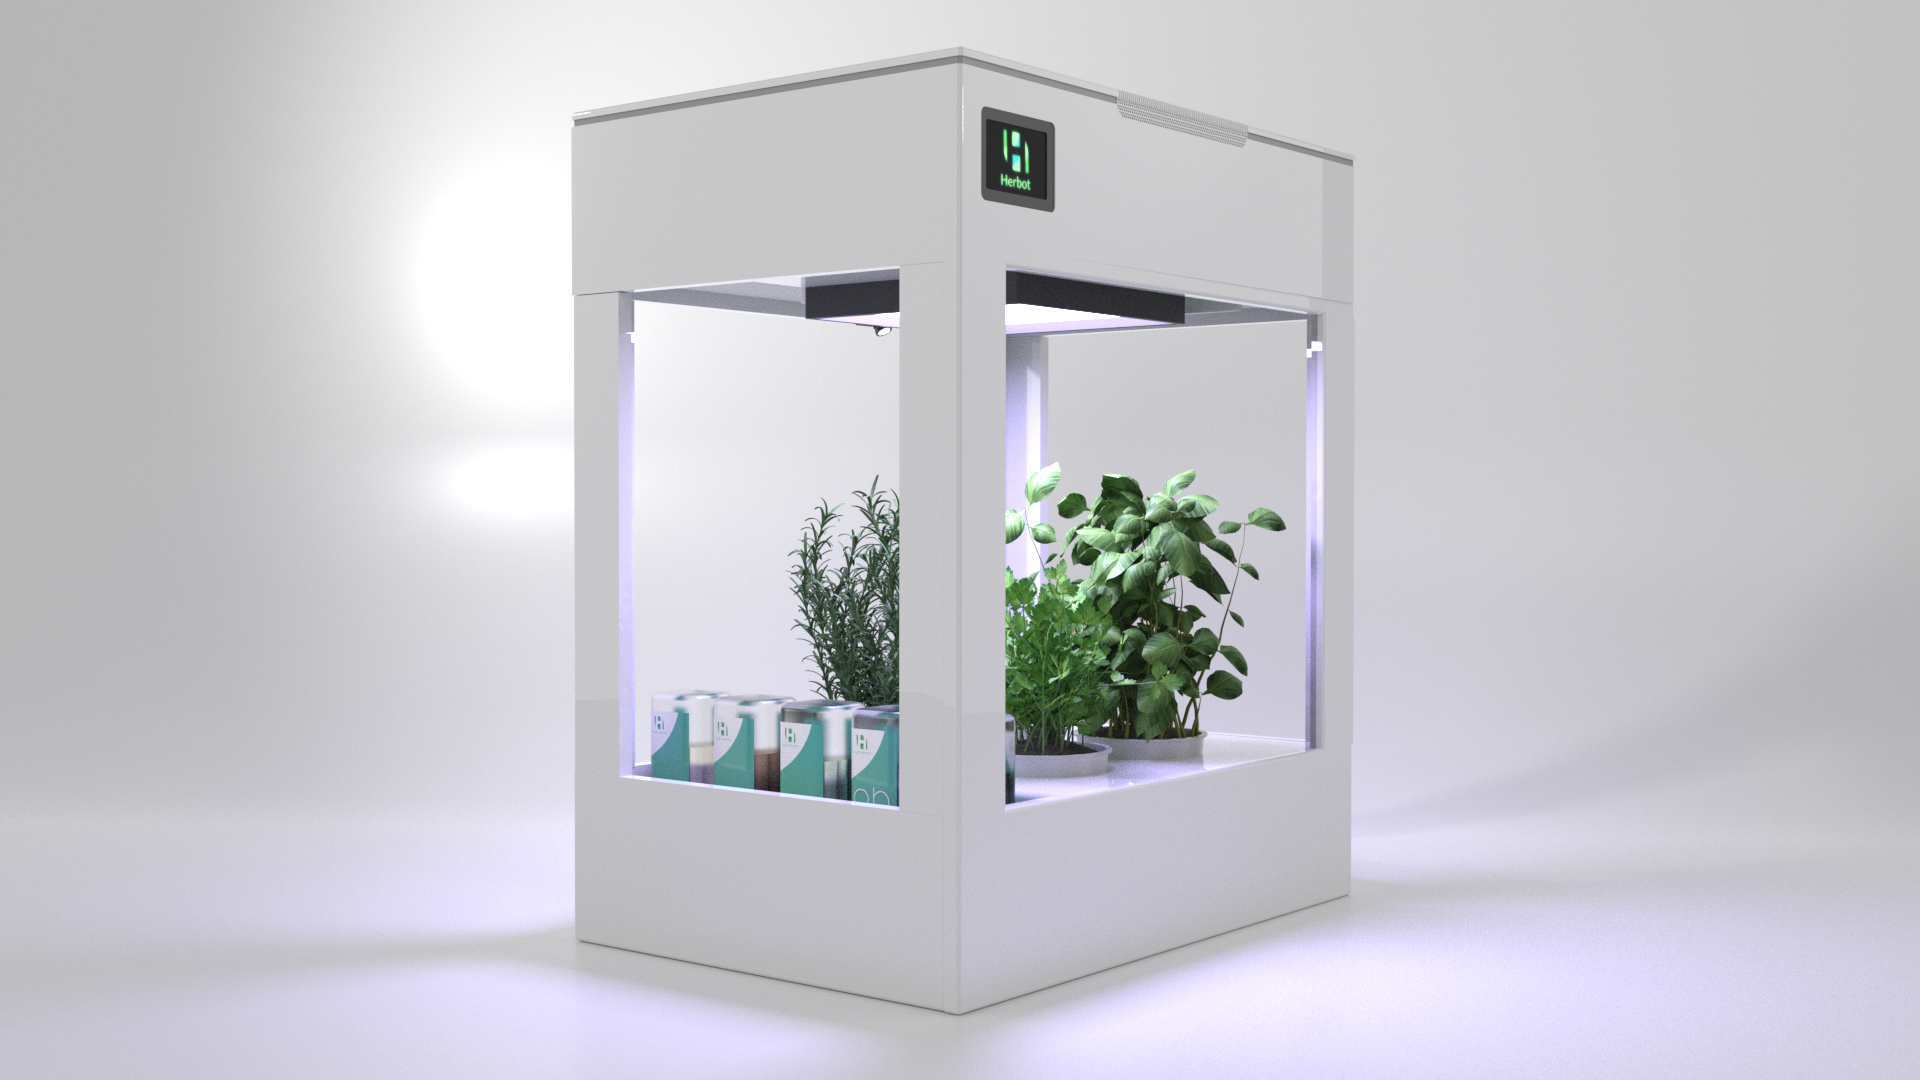 Pin By Farm4 0 On Indoor Gardening Growing With Herbot Indoor Garden Indoor Urban Garden